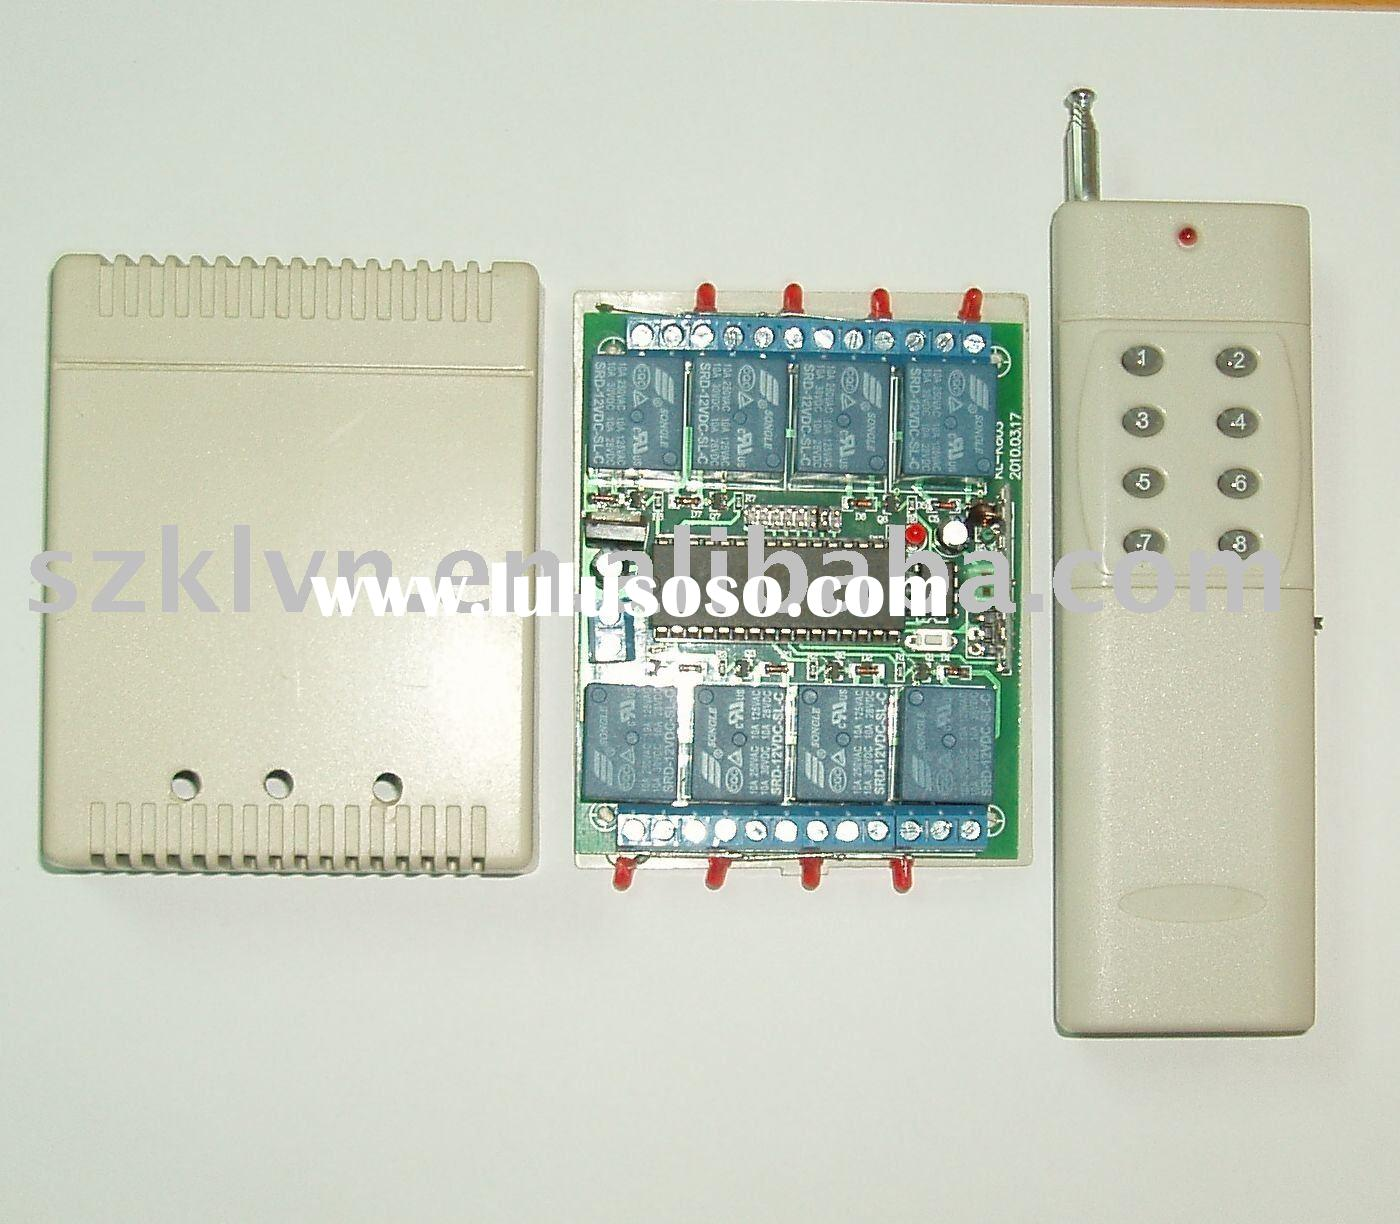 8-Channel wireless remote control switch and hign power transmitter